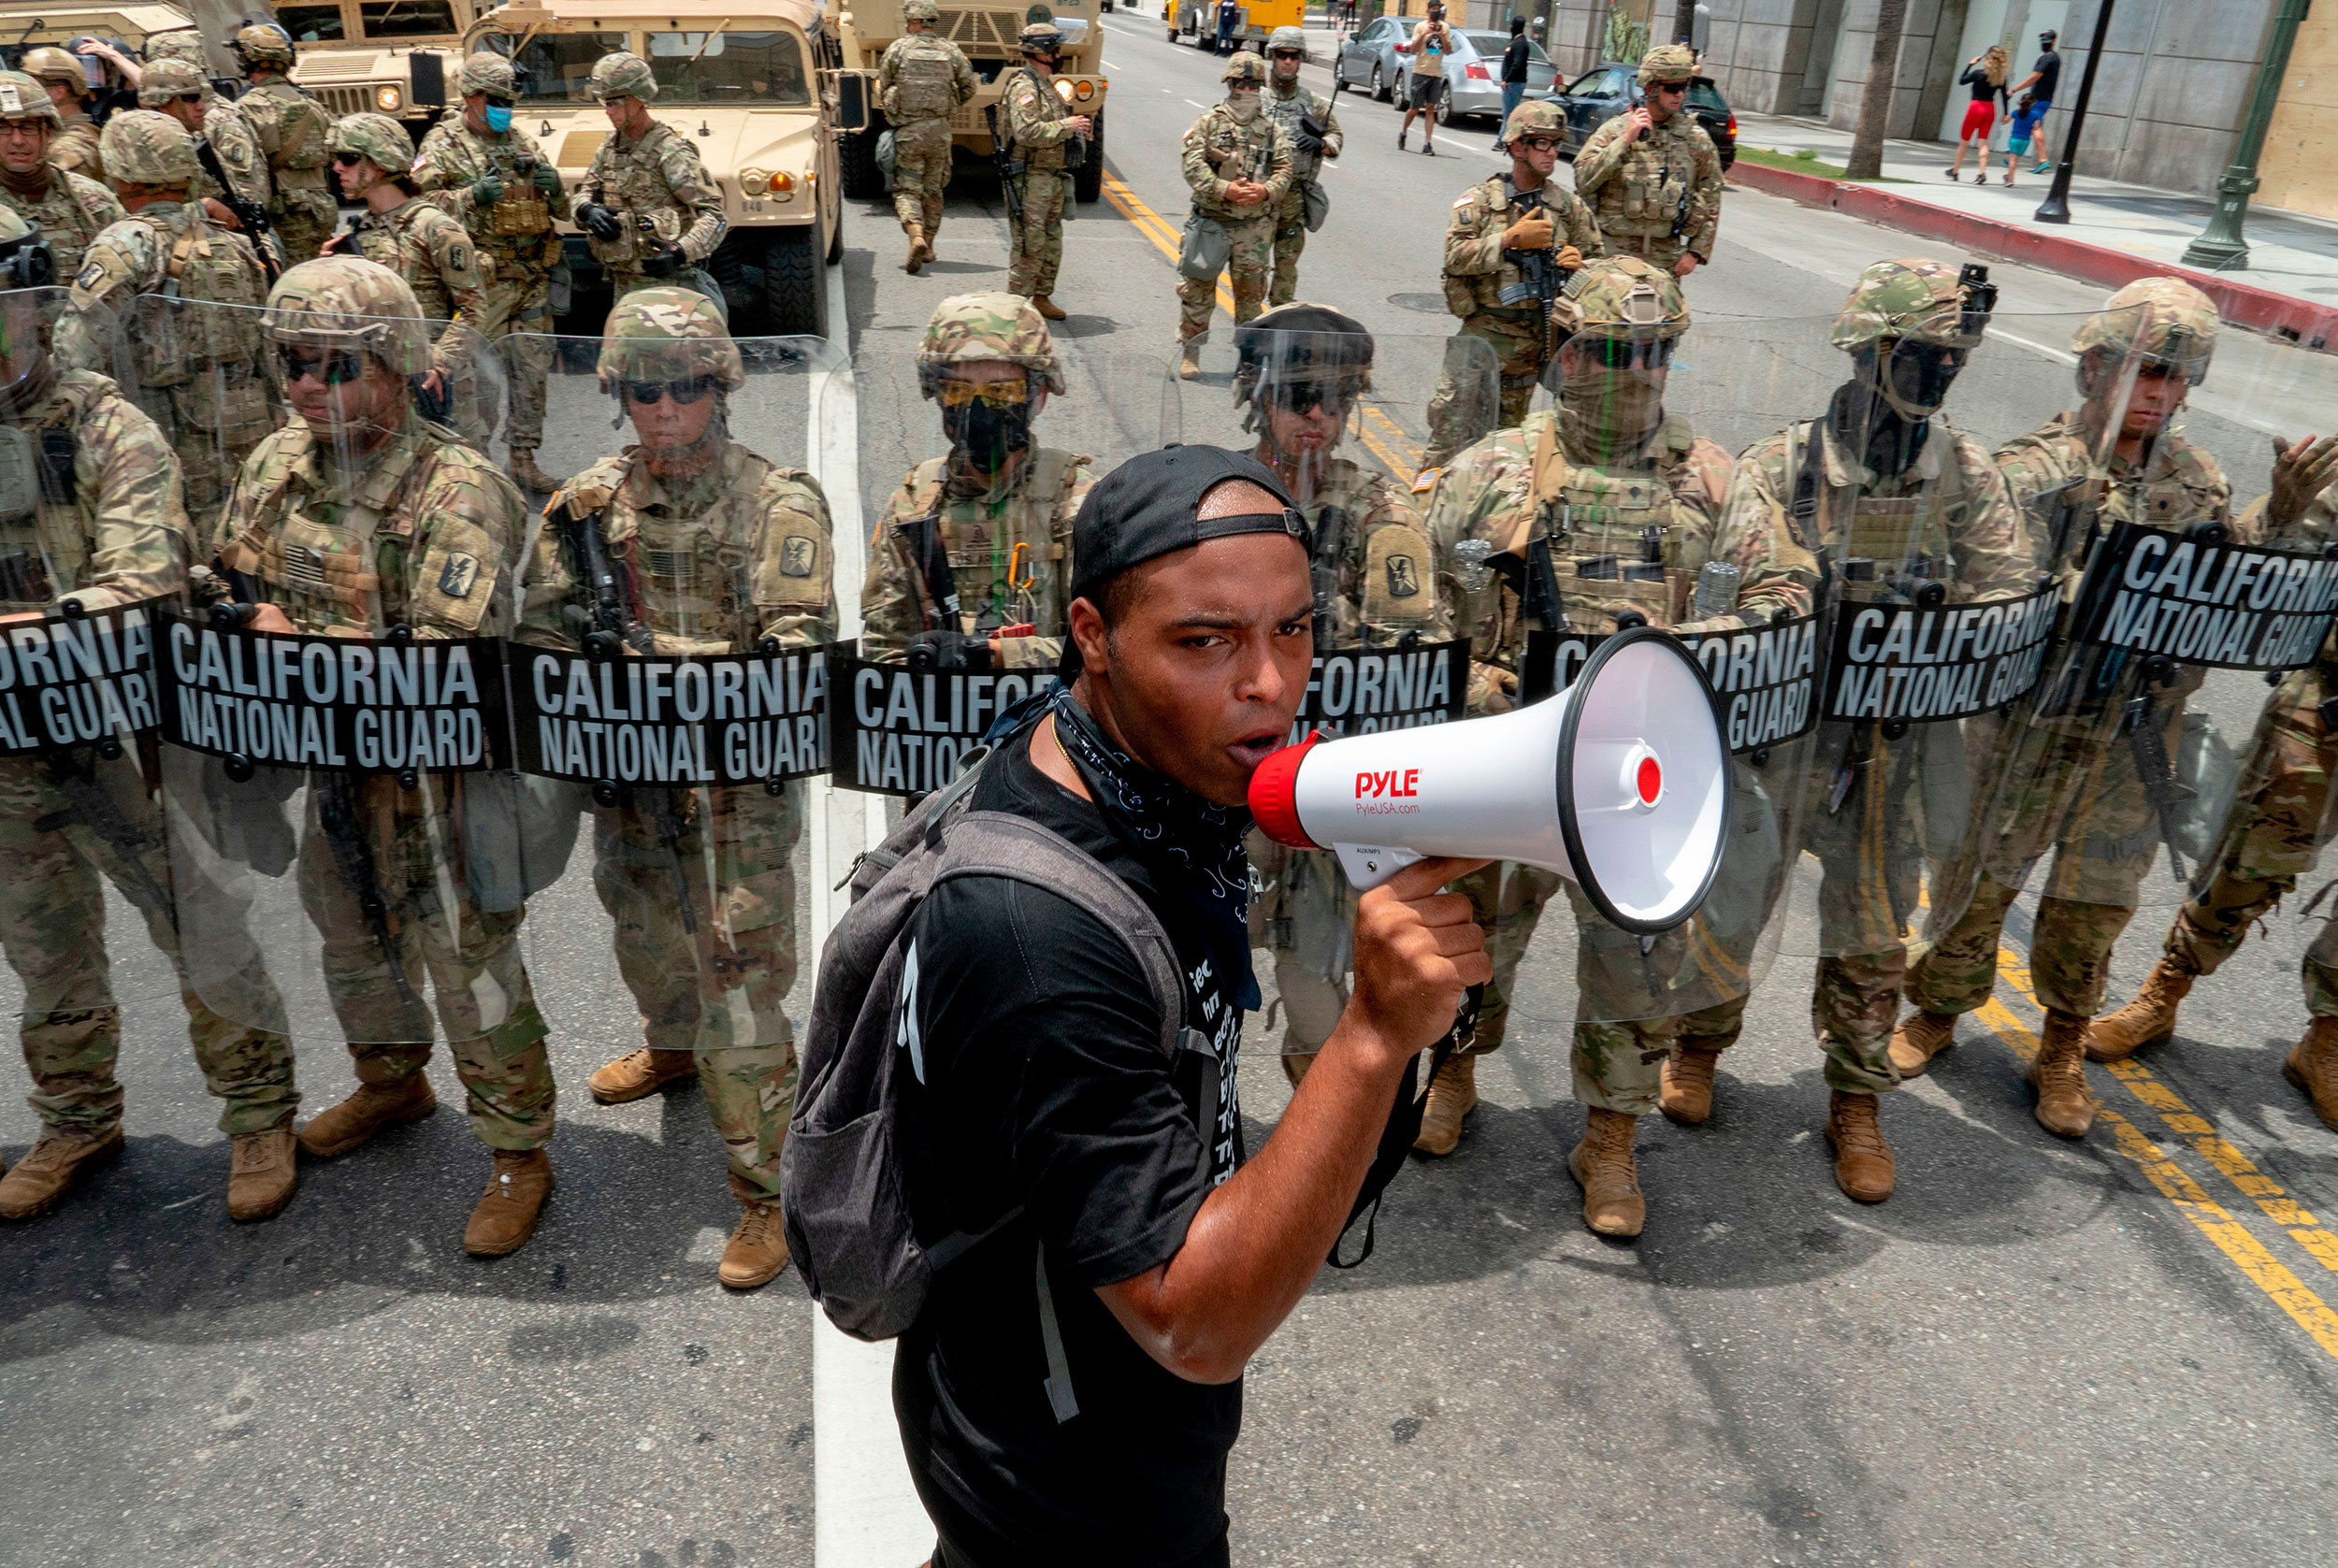 The National Guard has a long history of being called out during protests – but not in numbers like this